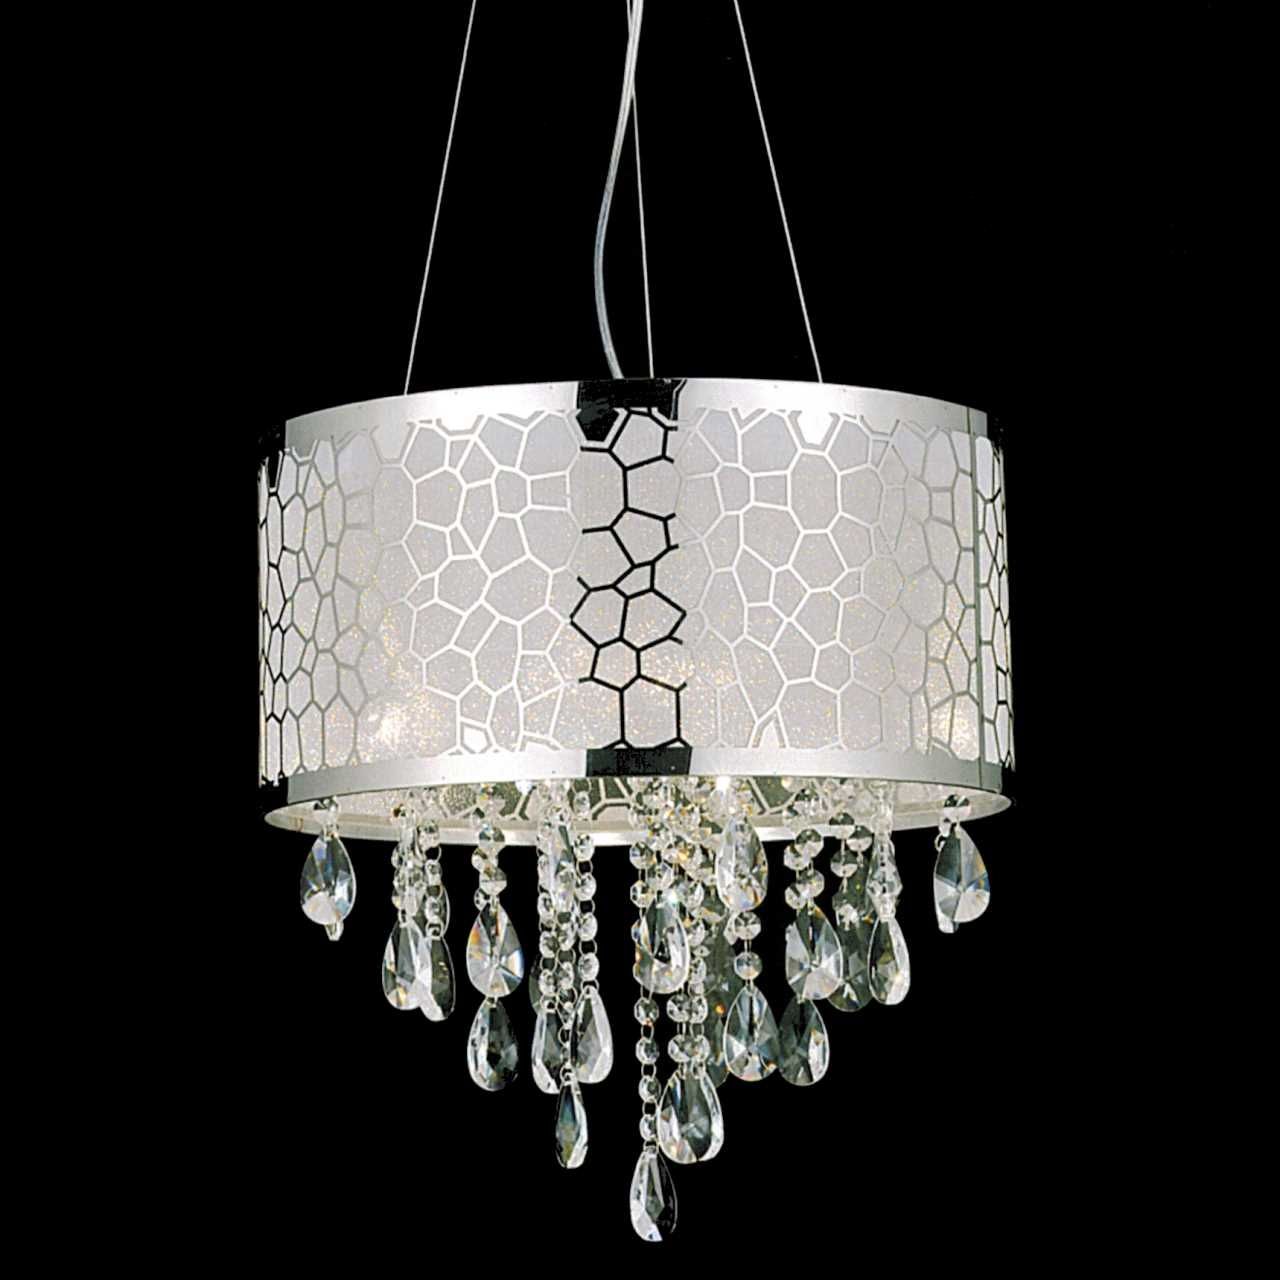 Chandelier Grey Shades Crystal With Drum Shade Gray Using Addition Pertaining To Crystal Chandeliers With Shades (View 7 of 25)